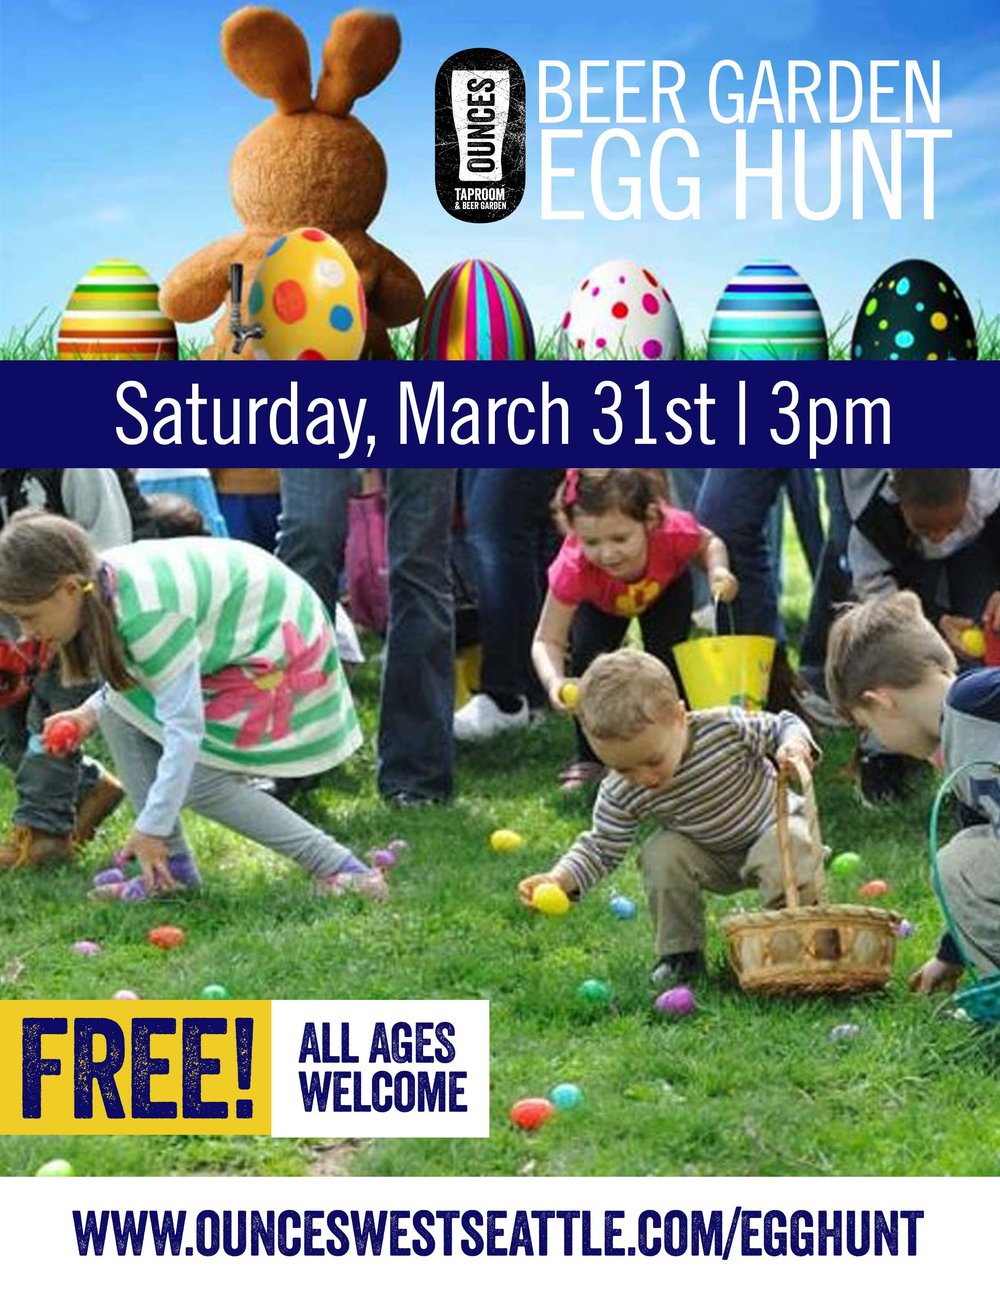 Beer for you, Candy and Egg Hunting for the kiddos!  We'll be hiding over 1,000 eggs around our beer garden for your little ones to find. It's free for all ages, Hunt starts at 3pm.